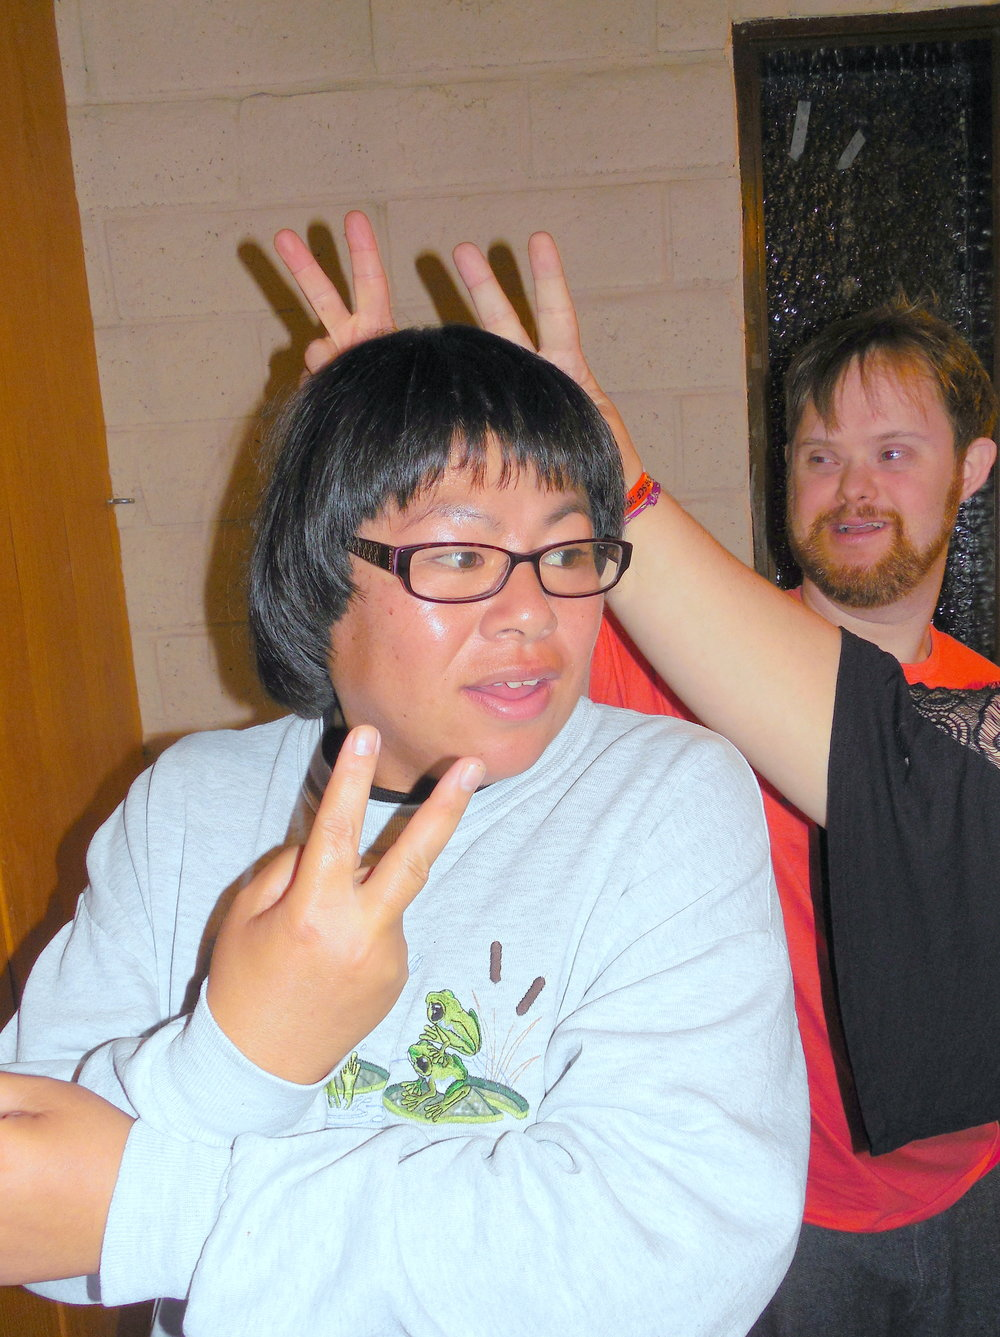 34 Game Night-Stephanie with so many bunny ears-David.jpg